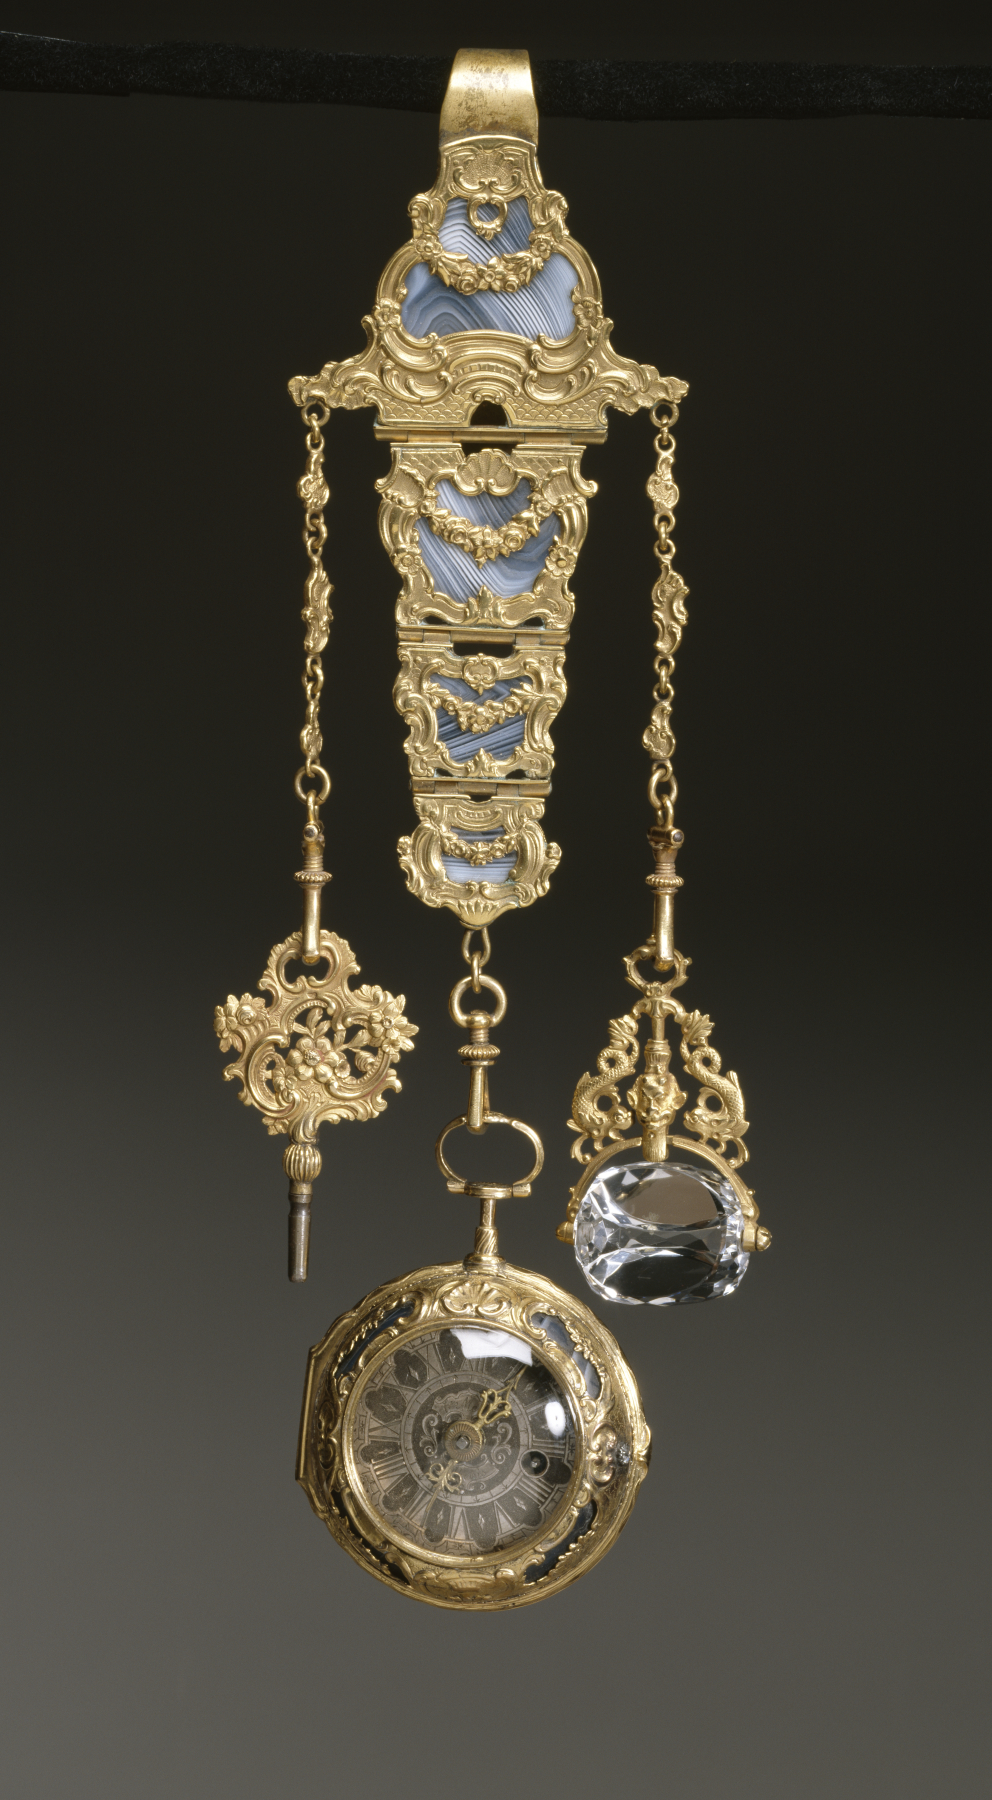 https://upload.wikimedia.org/wikipedia/commons/0/0b/French_-_Chatelaine_with_Watch_-_Walters_5816.jpg